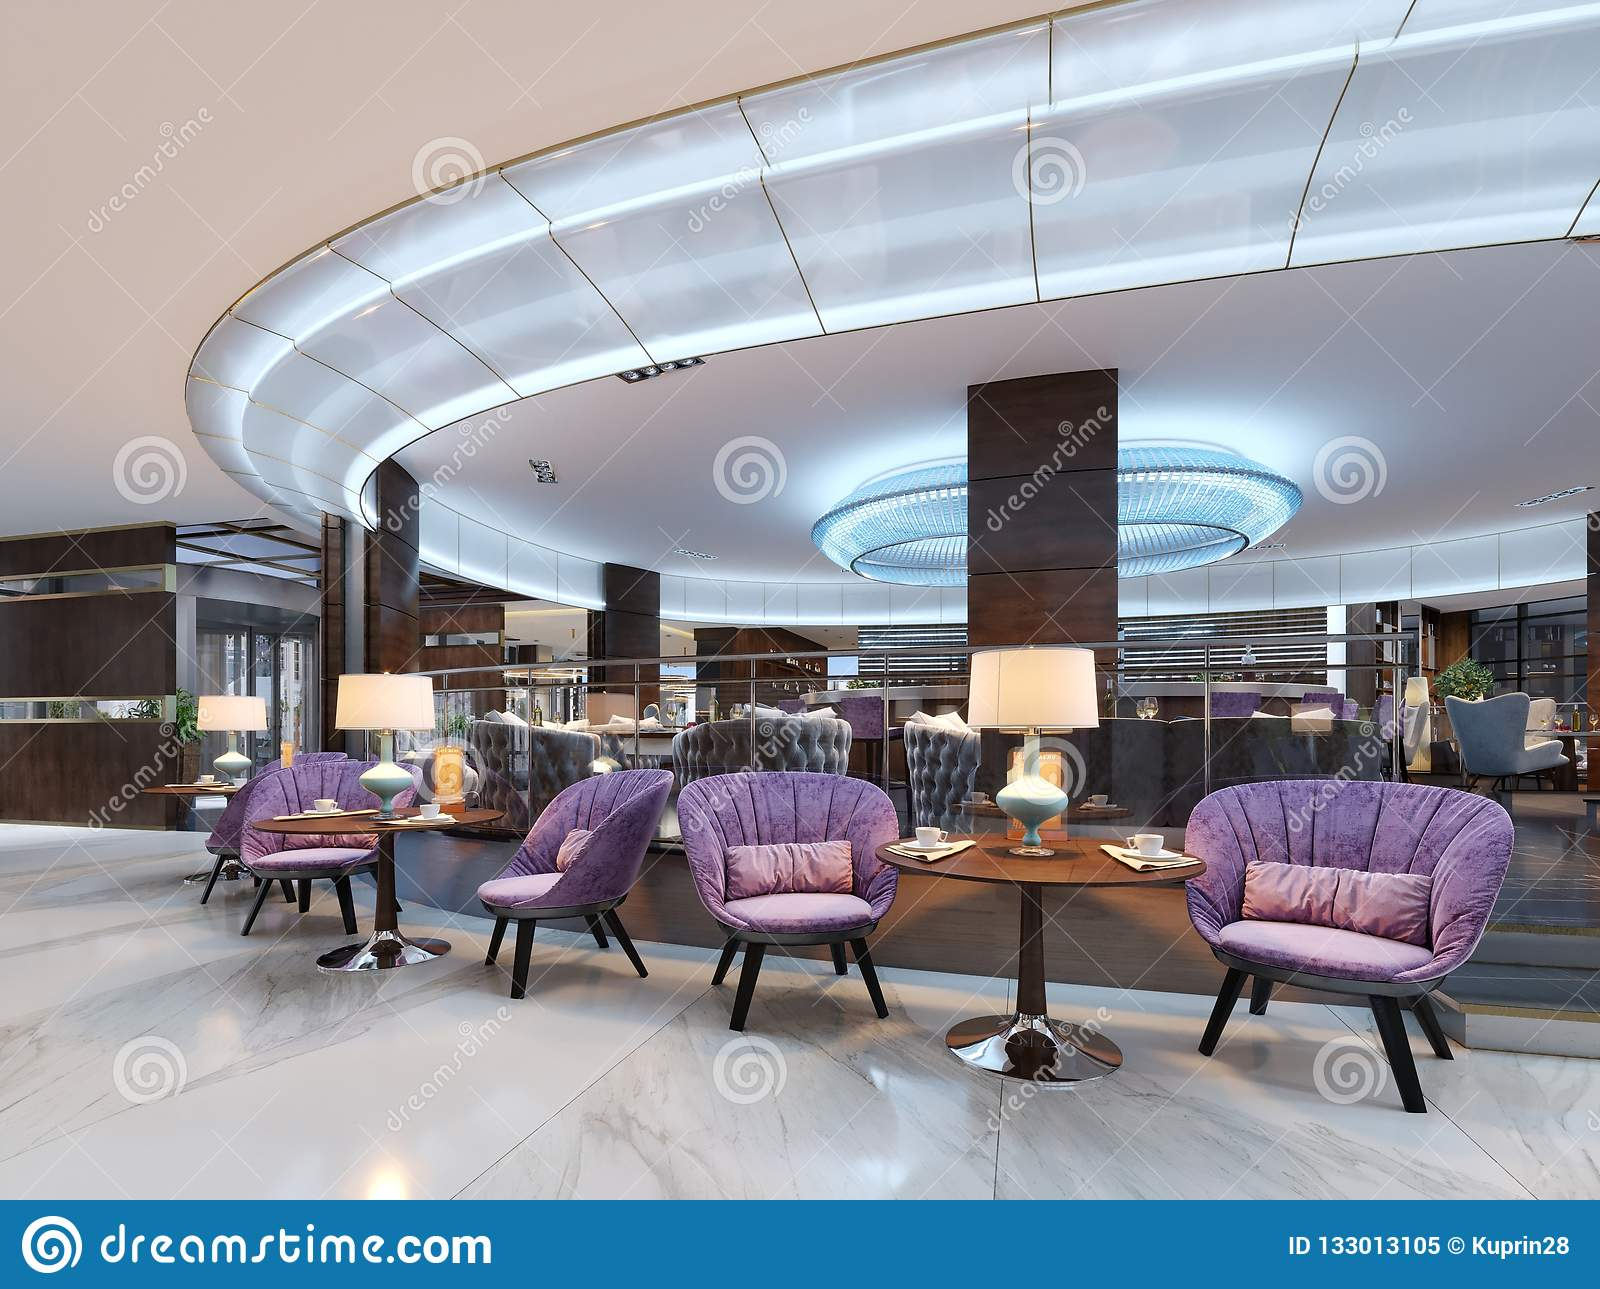 Cafe Interior Marble Stock Illustrations 517 Cafe Interior Marble Stock Illustrations Vectors Clipart Dreamstime